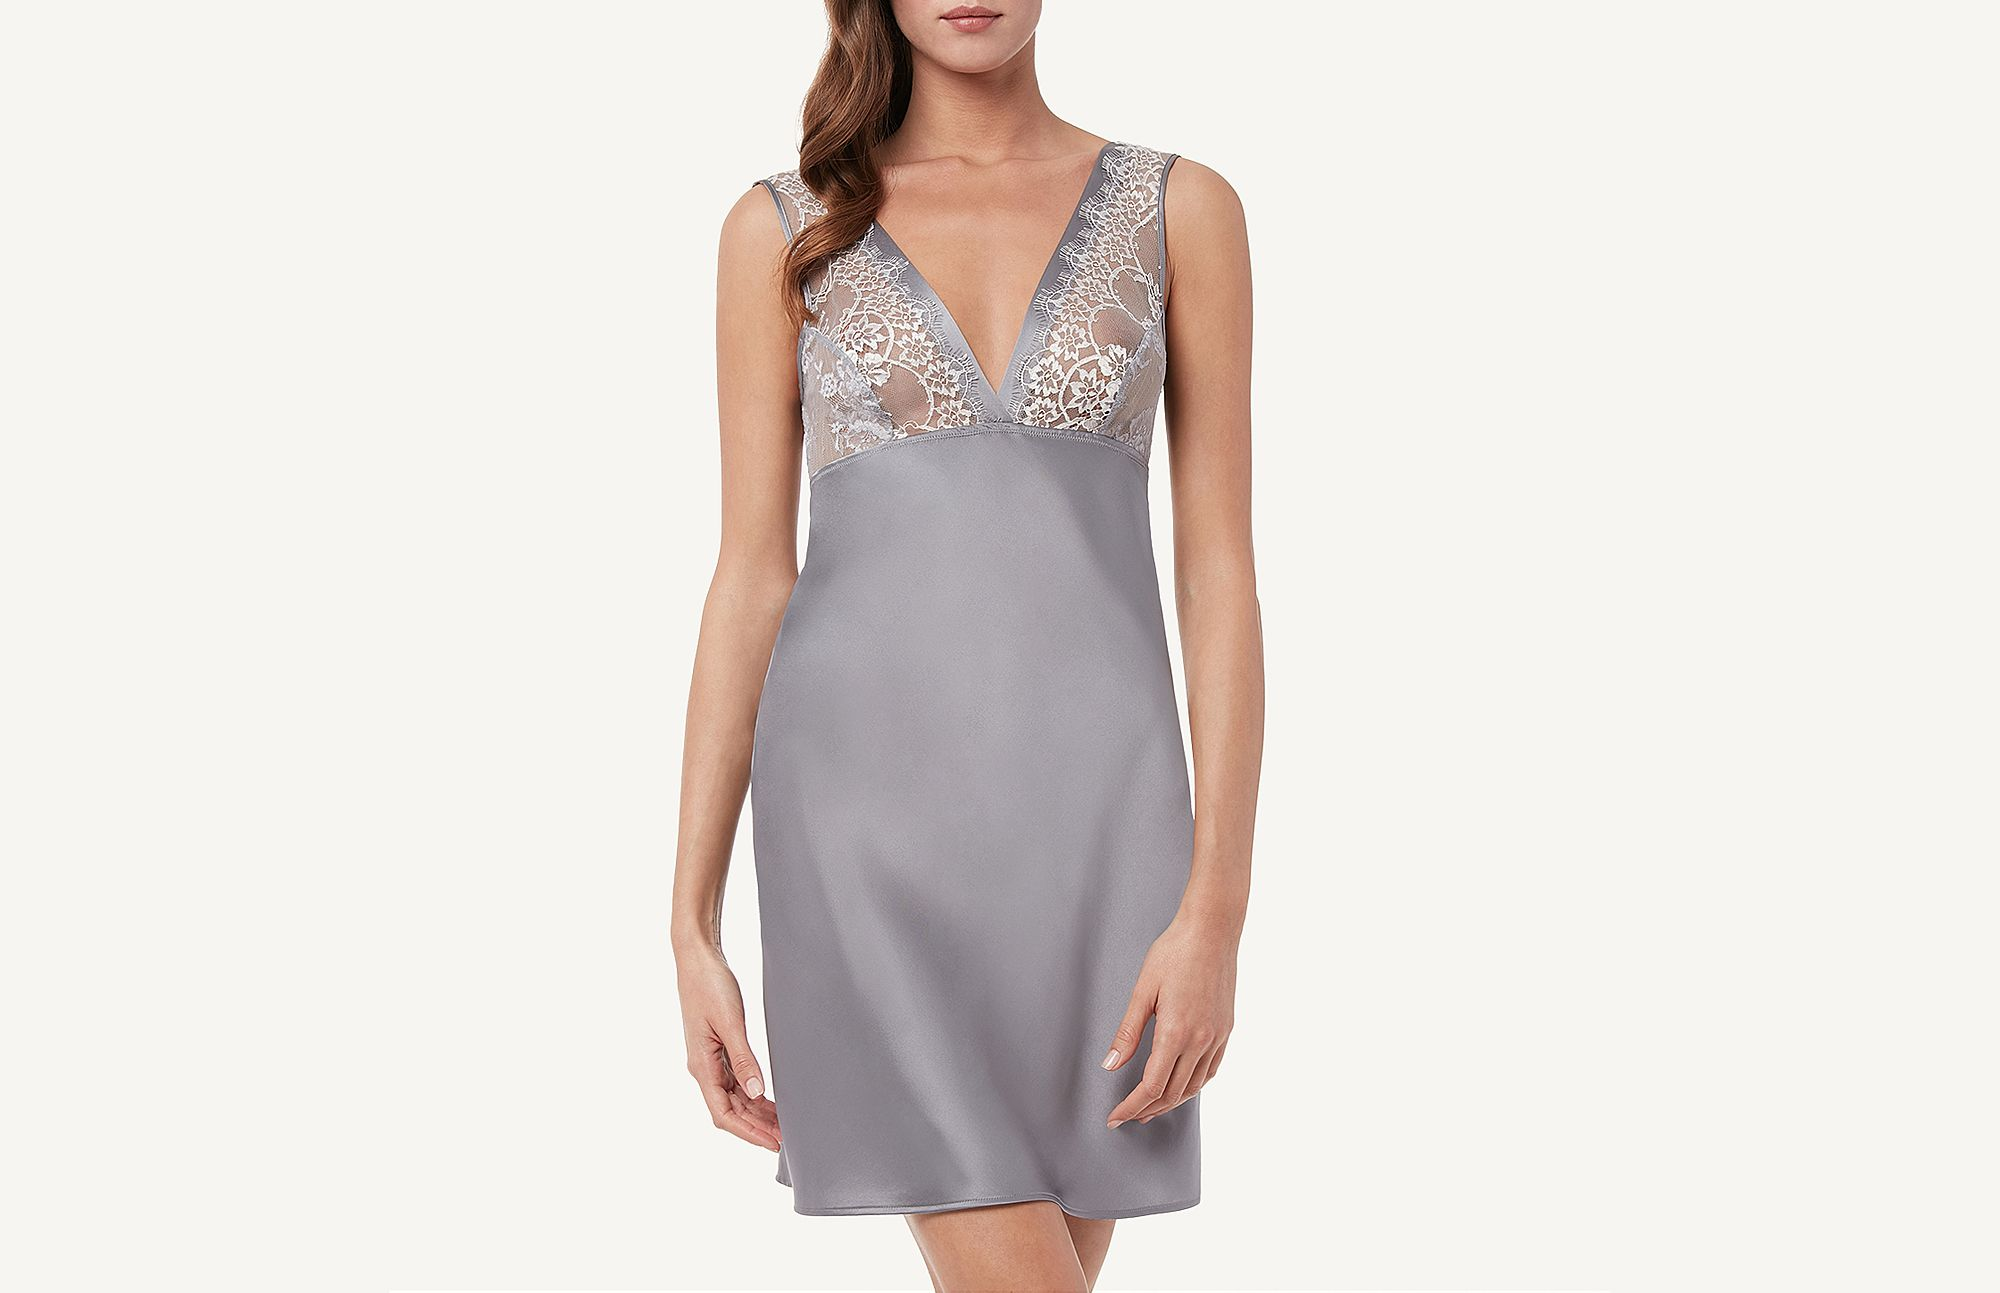 intimissimi lingerie mamme a spillo baby doll 87cc4aeaa3eb